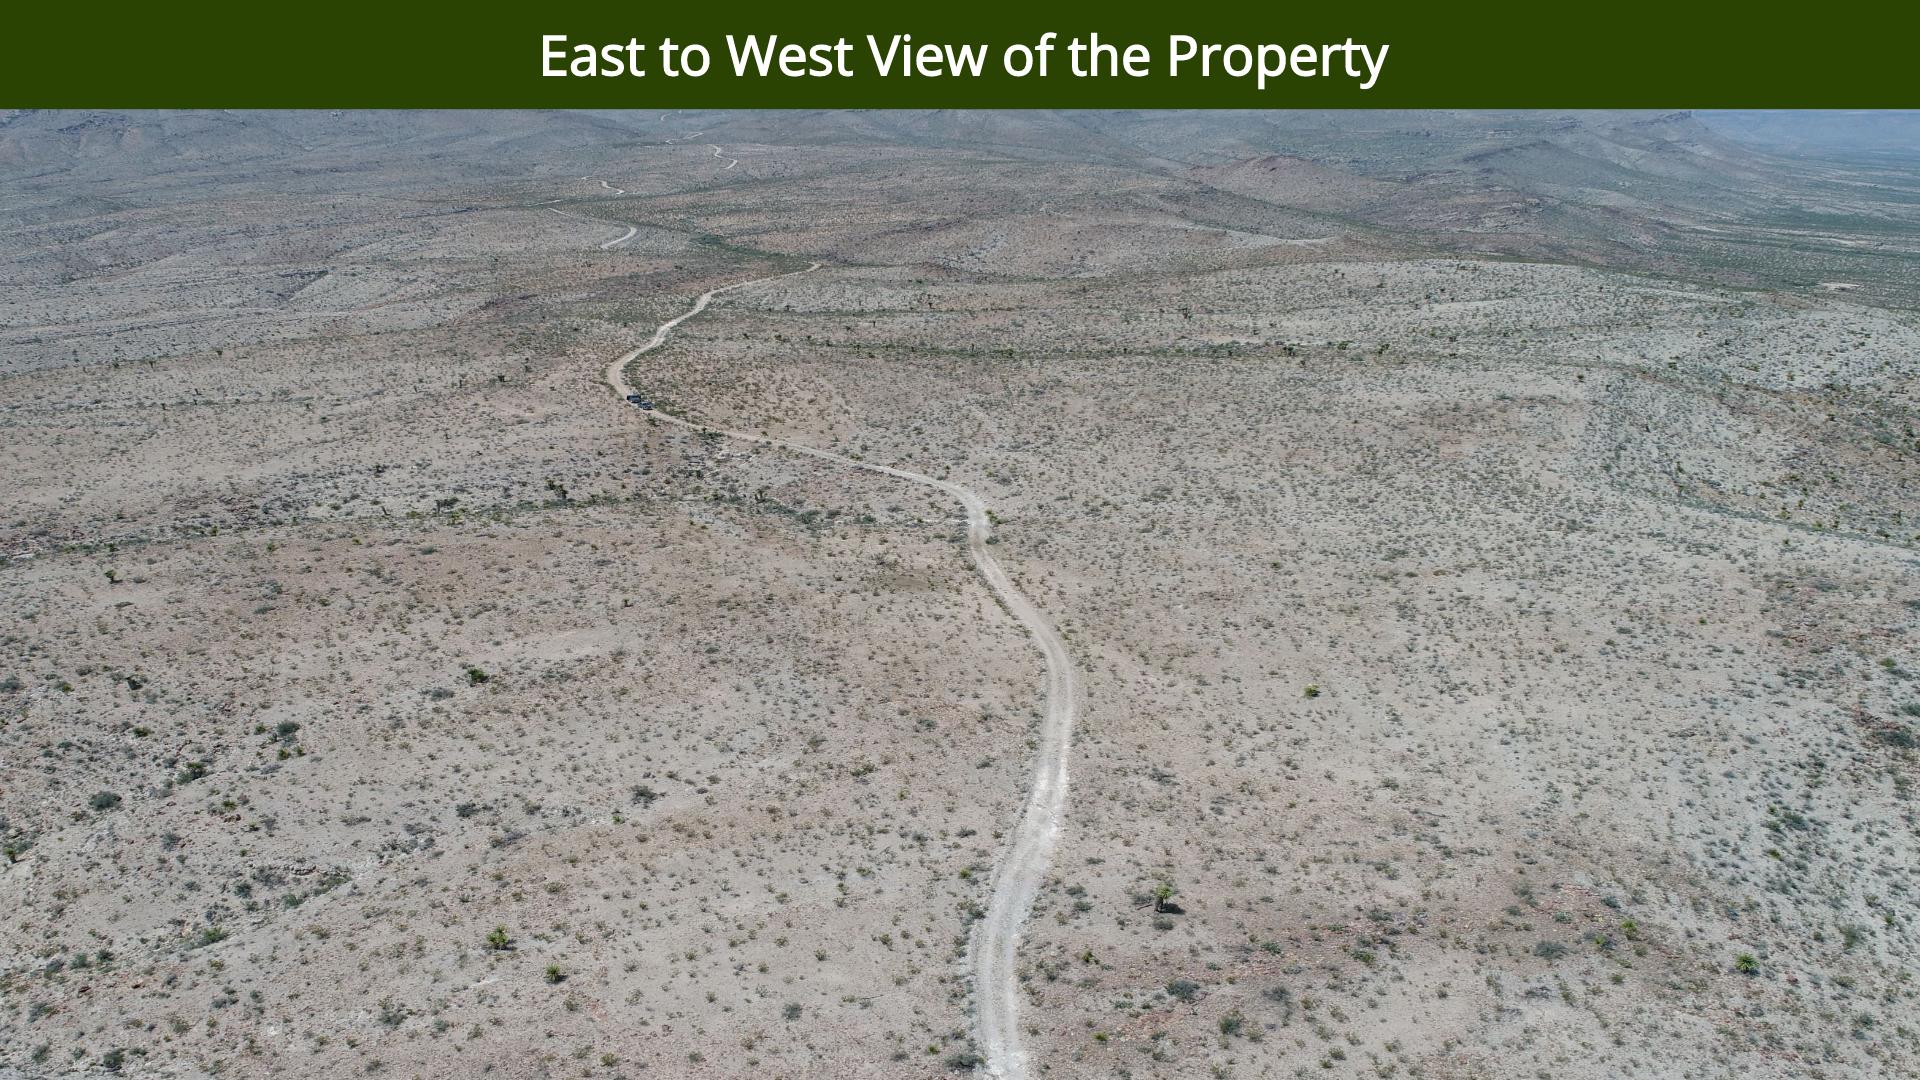 East to West View of the Property